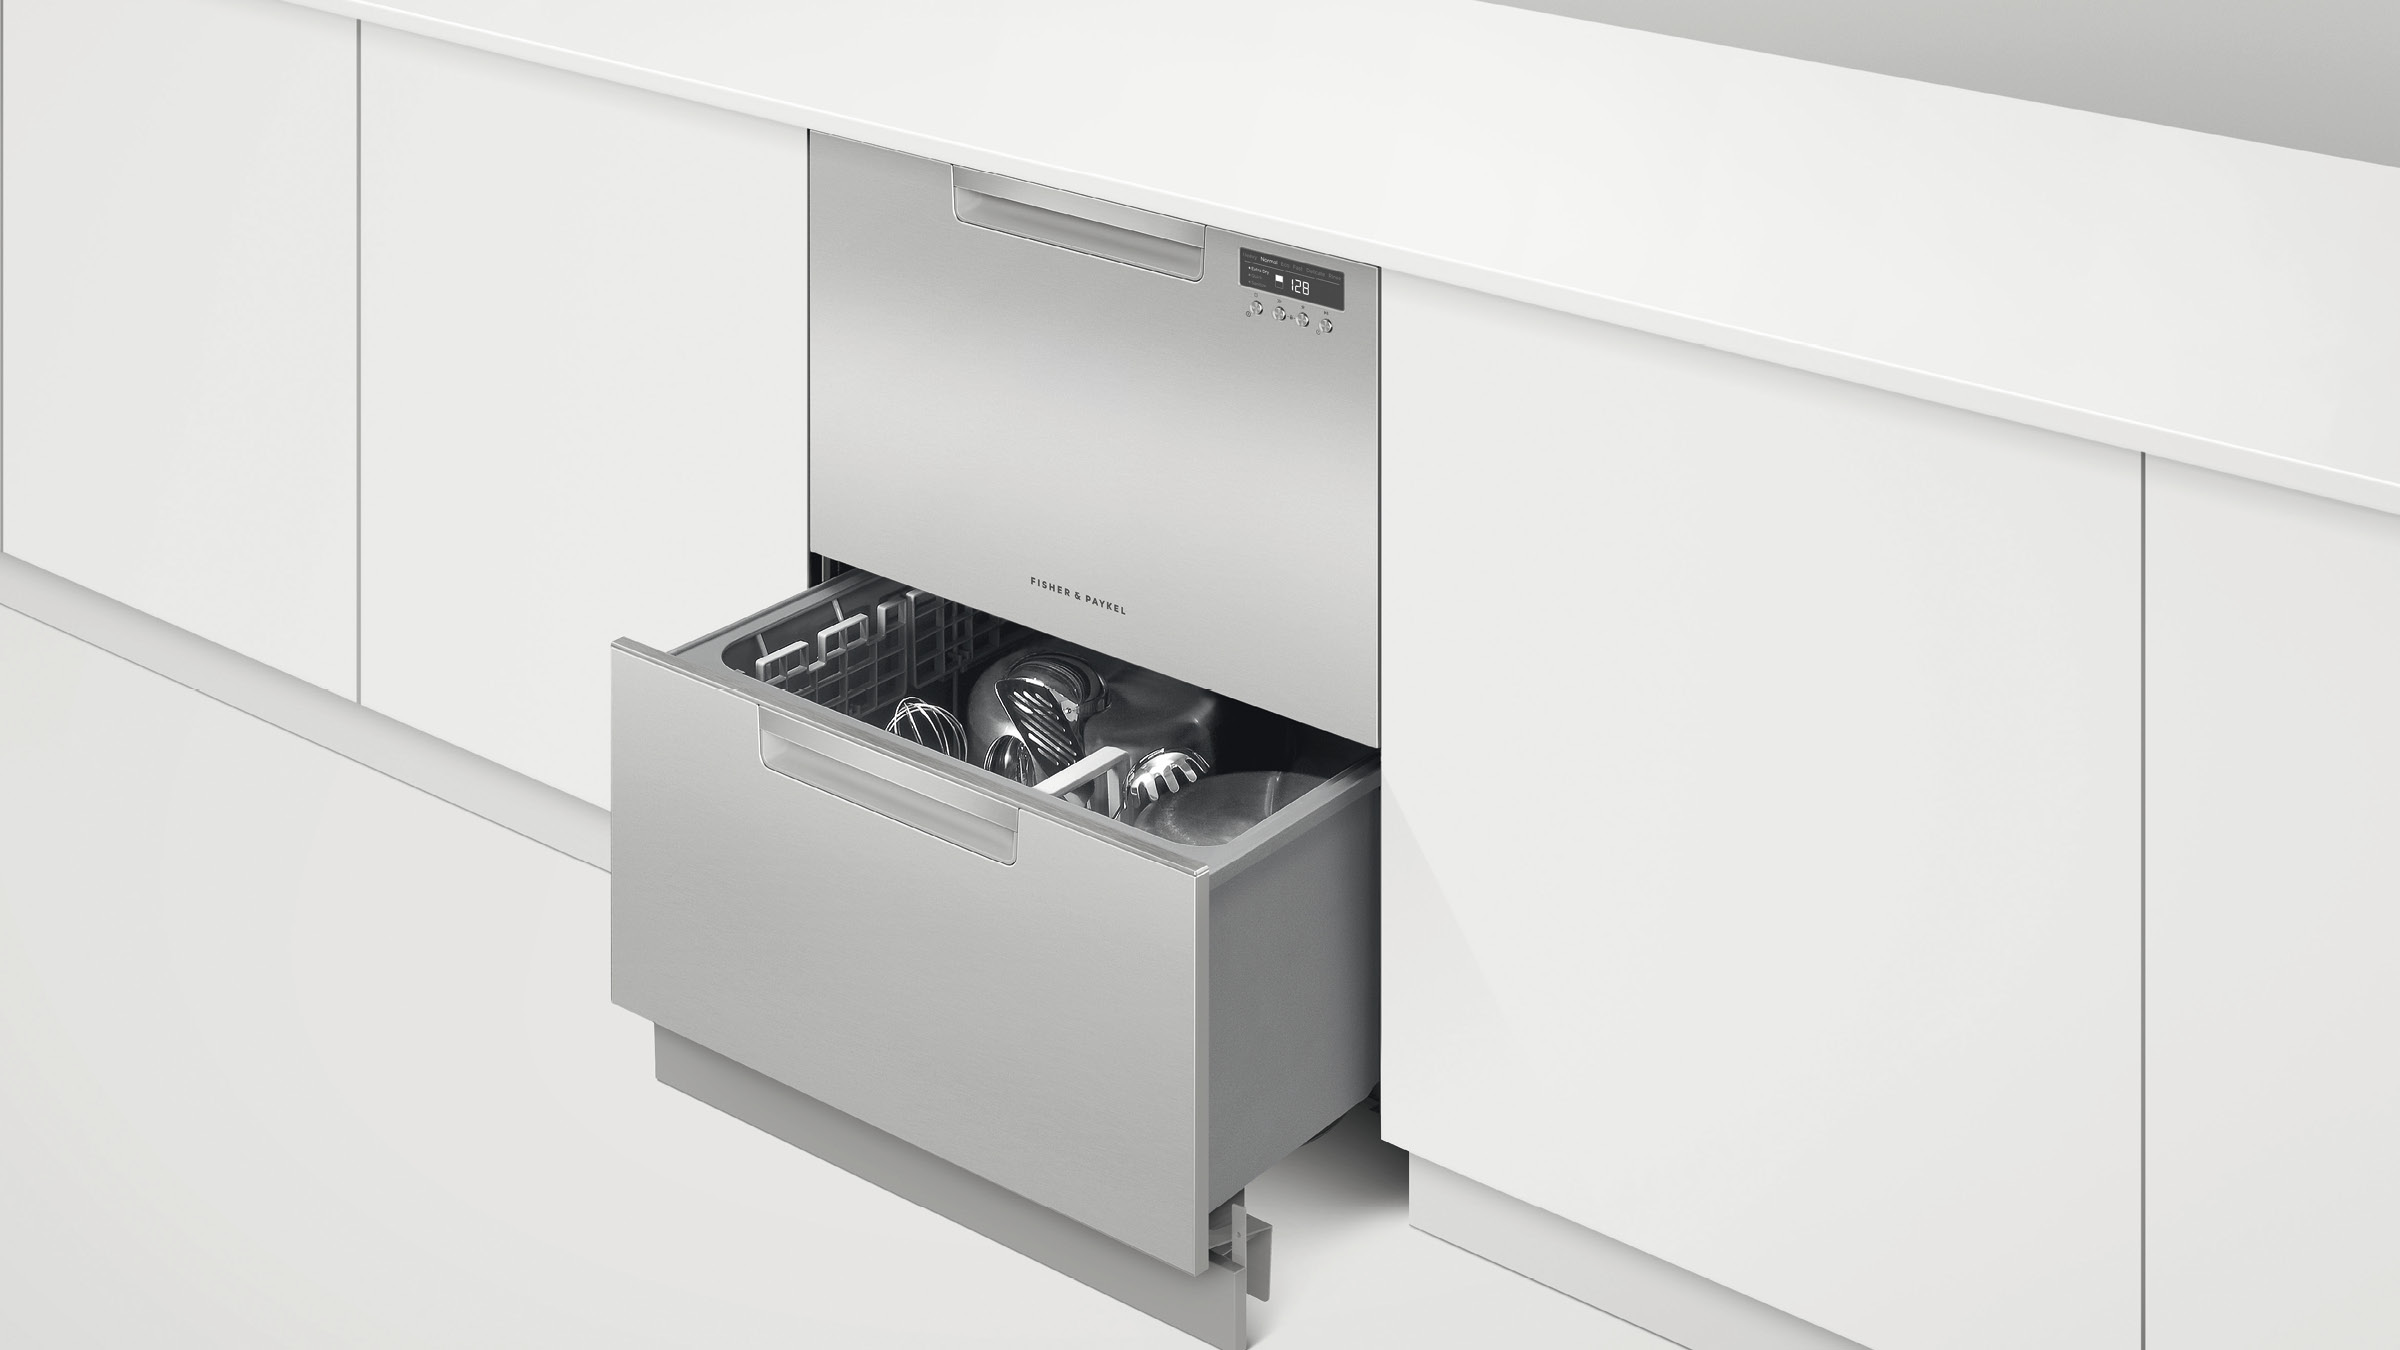 Fisher and paykel dishdrawer manual